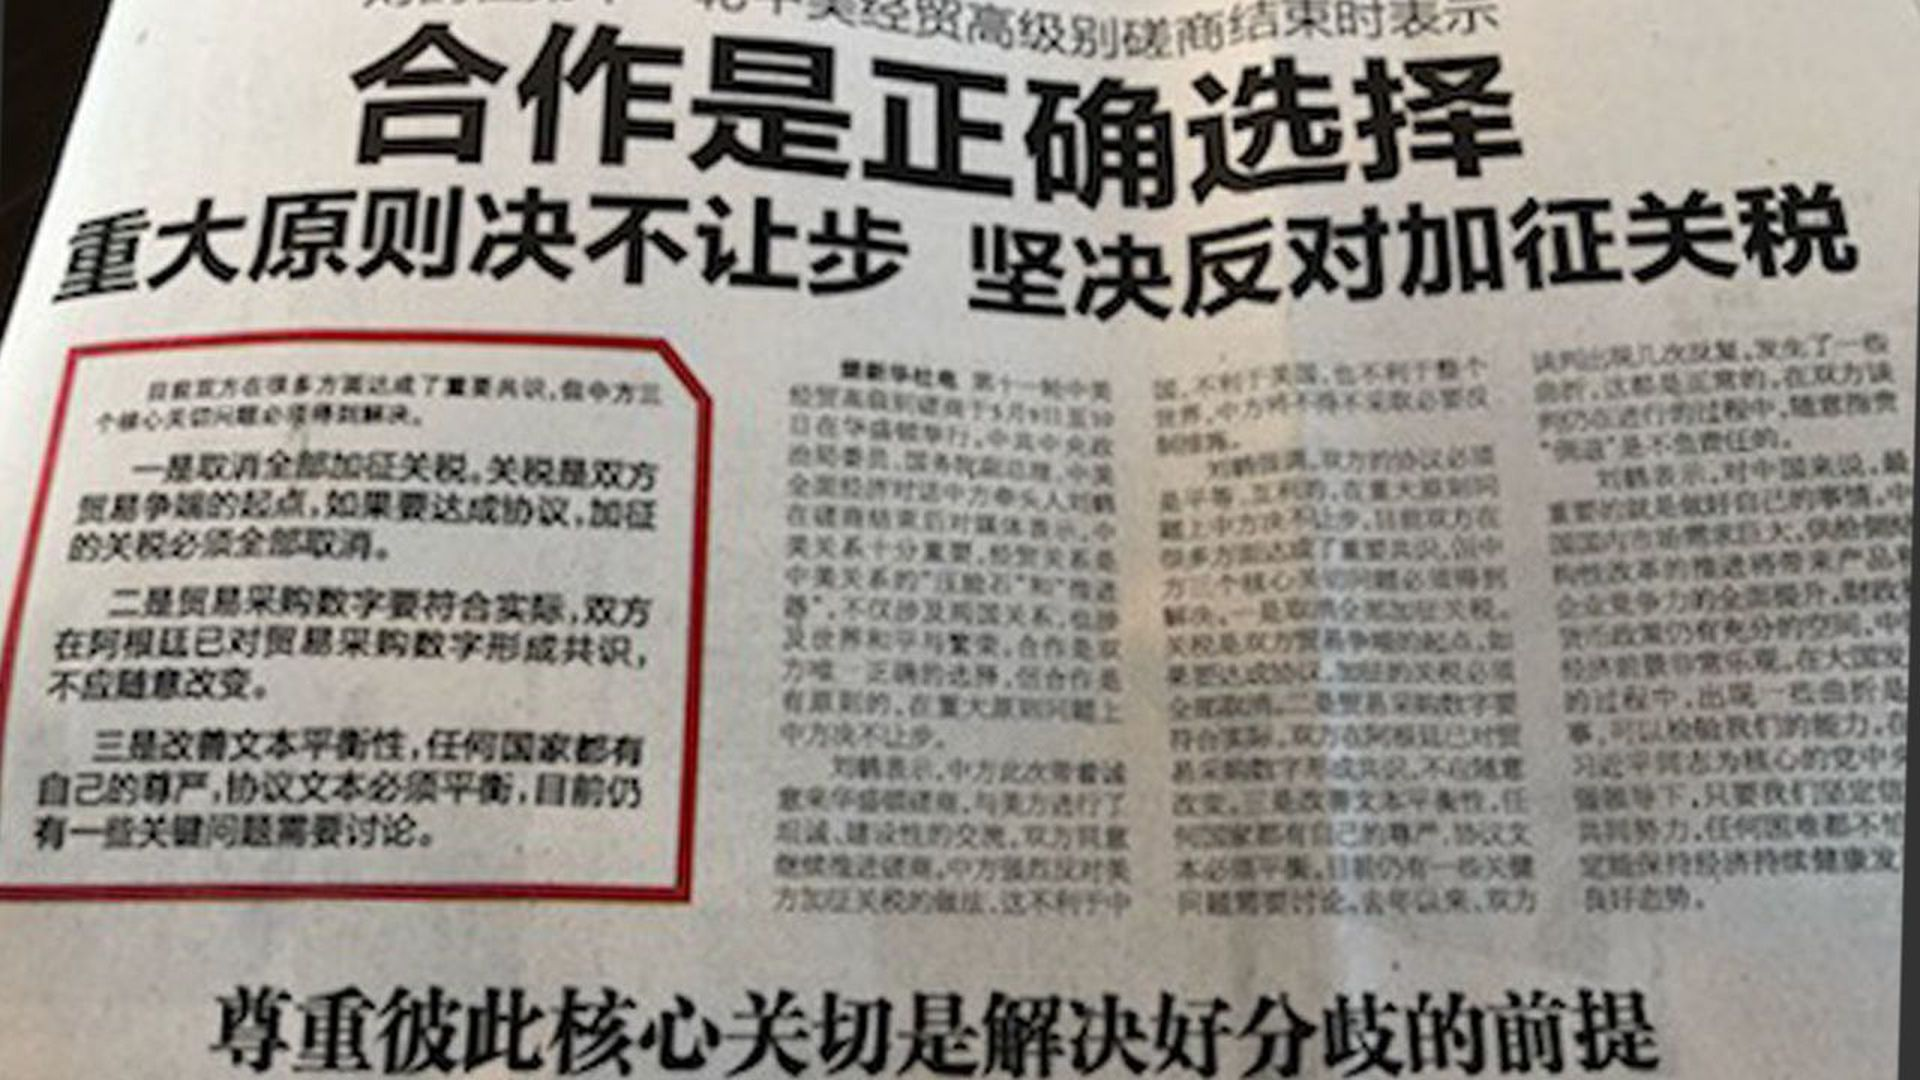 The Chengdu Commercial Daily, in the capital of Sichuan Province. (Photo courtesy Kevin Rudd)